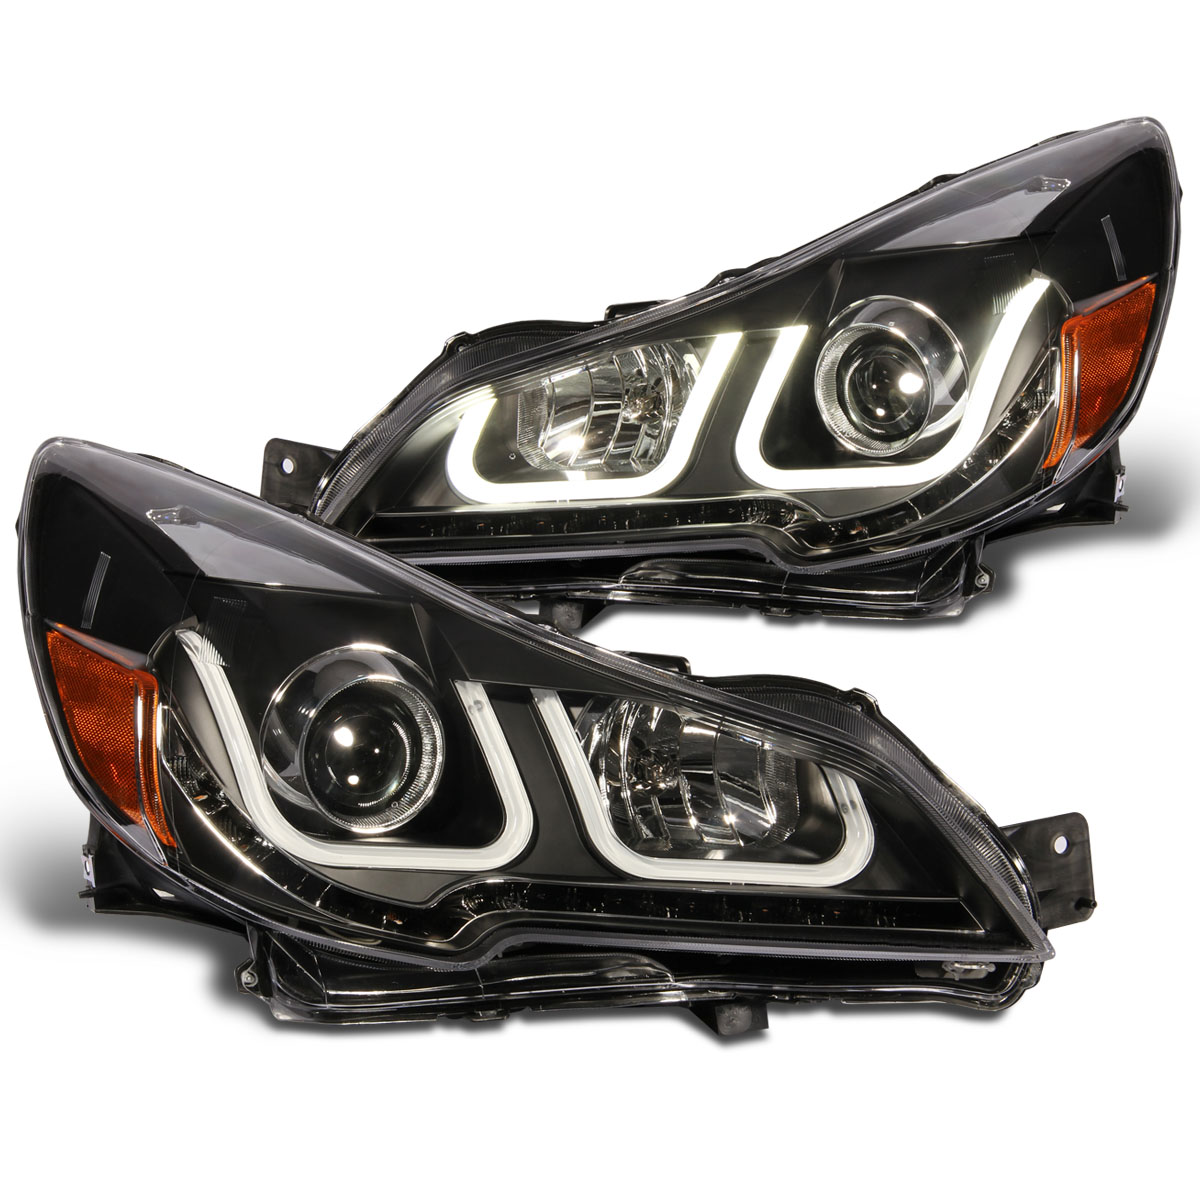 2010 2012 subaru outback led u style light bar projector 2010 2012 subaru outback led u style light bar projector headlights black vanachro Images